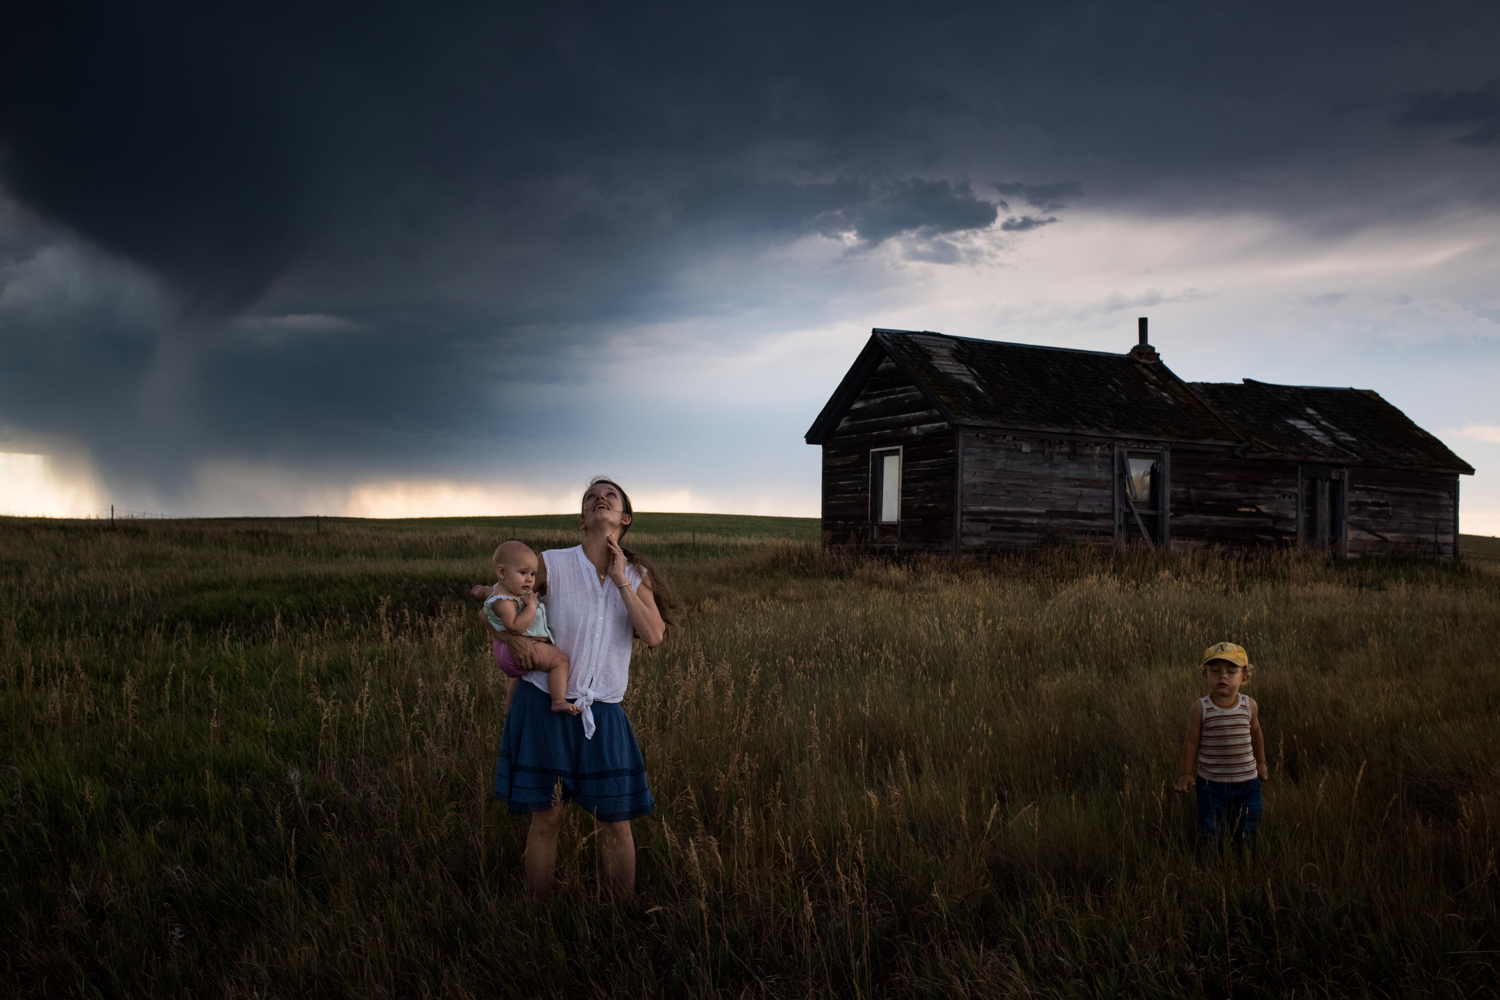 "45�33'14.2""N 102�30'36.1""W. 114 miles from the nearest McDonald's.